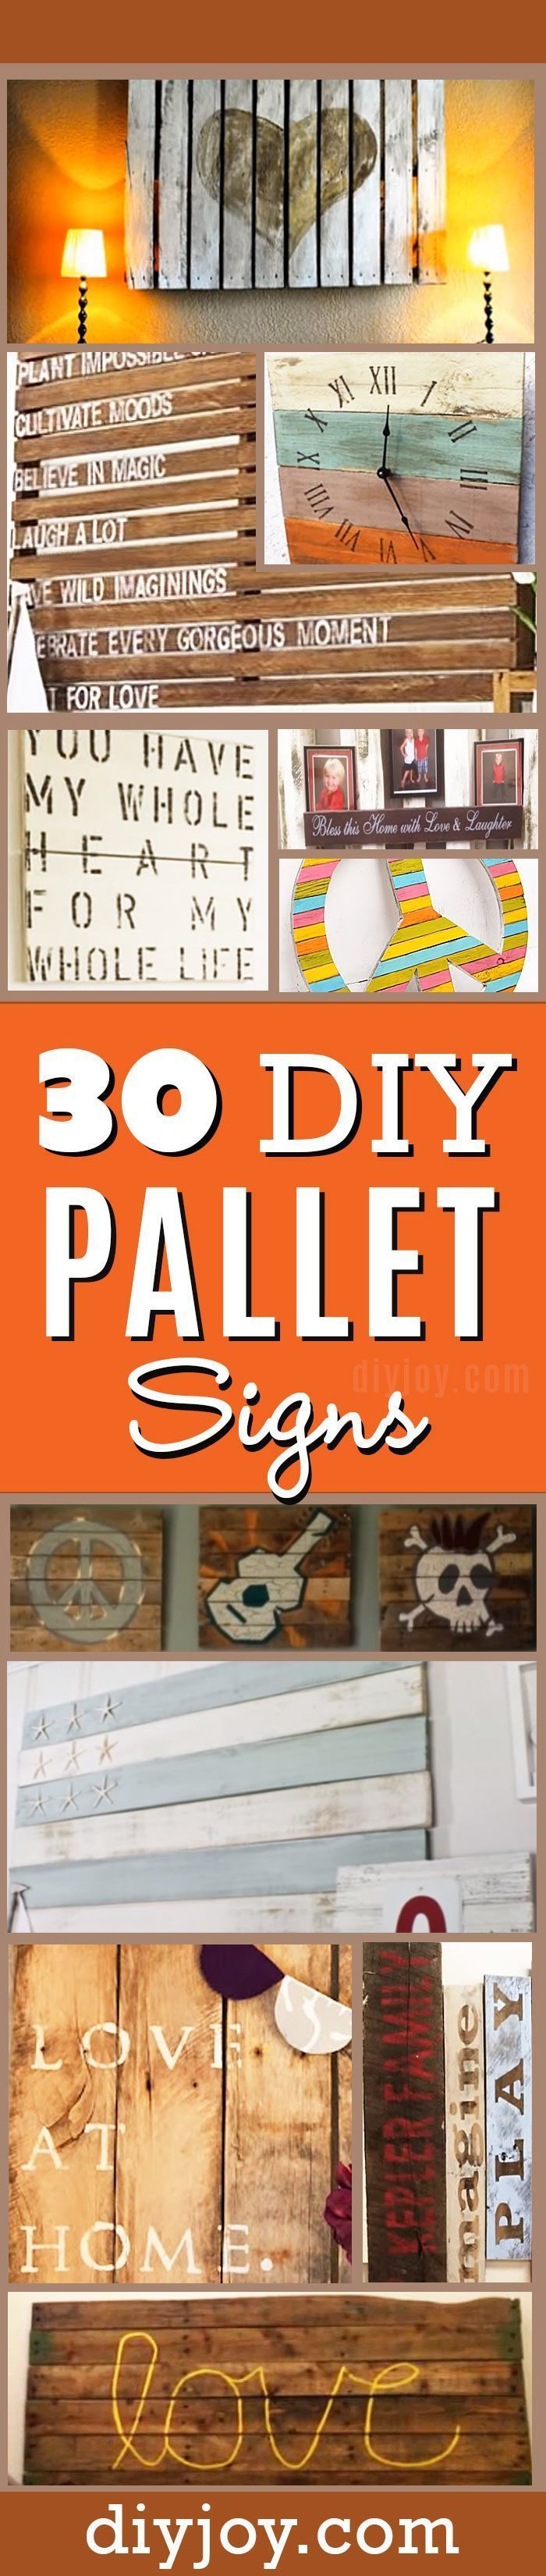 Rustic Diy Wood Pallet Art Ideas Your Walls Absolutely Need